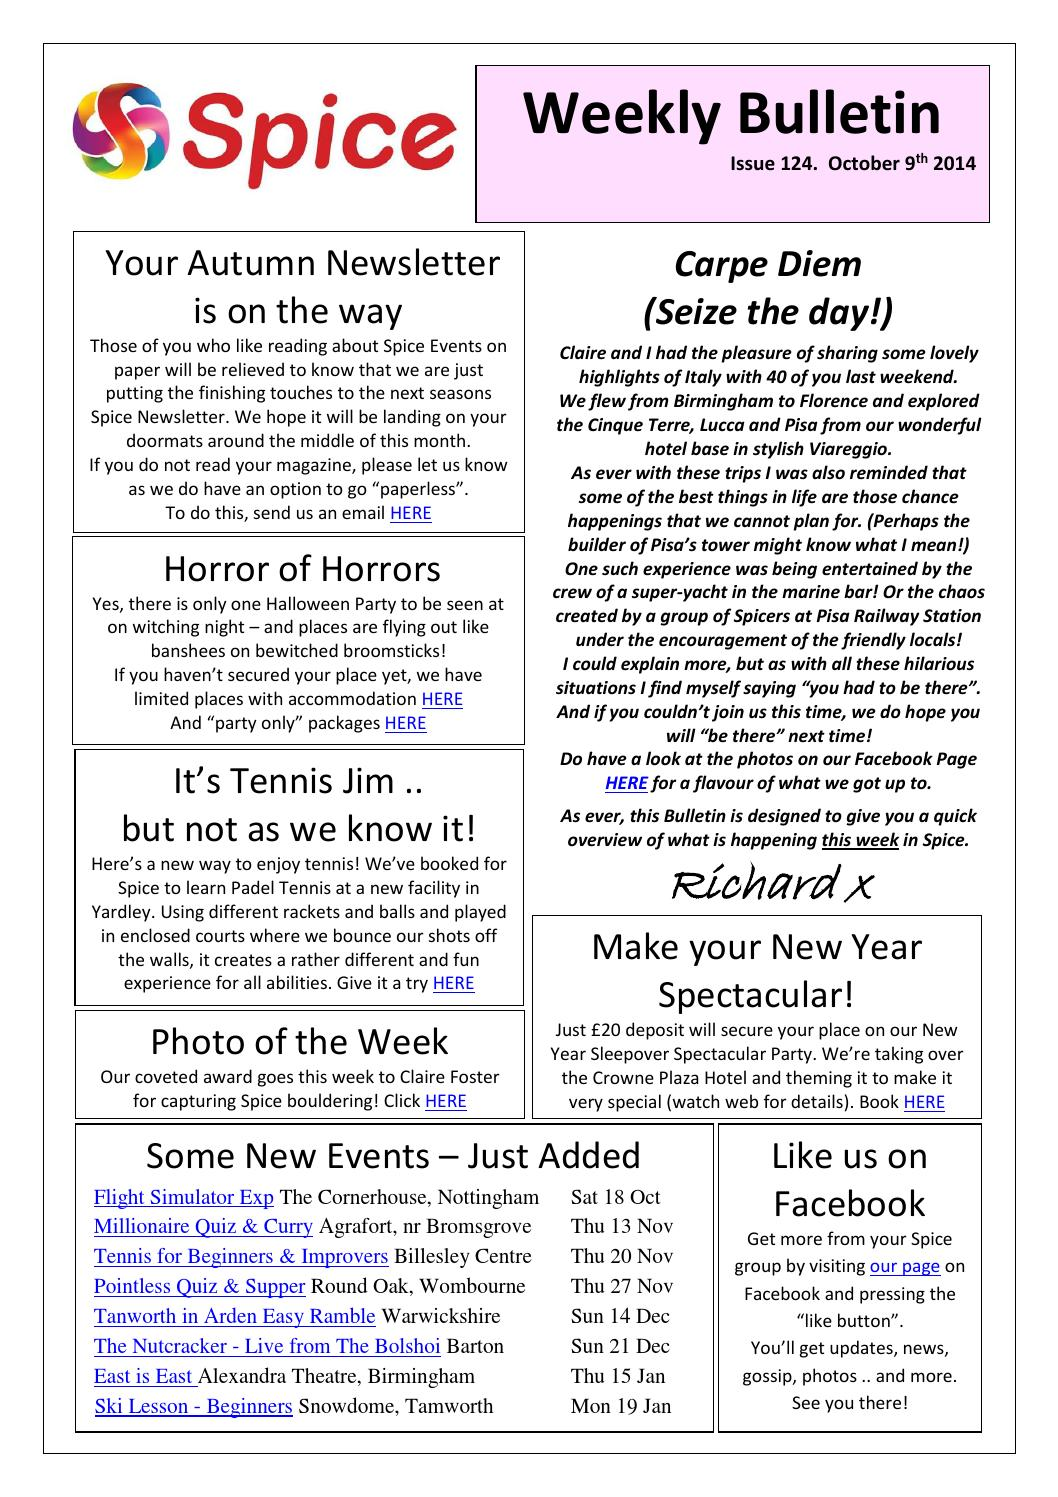 Spice West Mids Weekly Bulletin 9th October 2014 by Richard